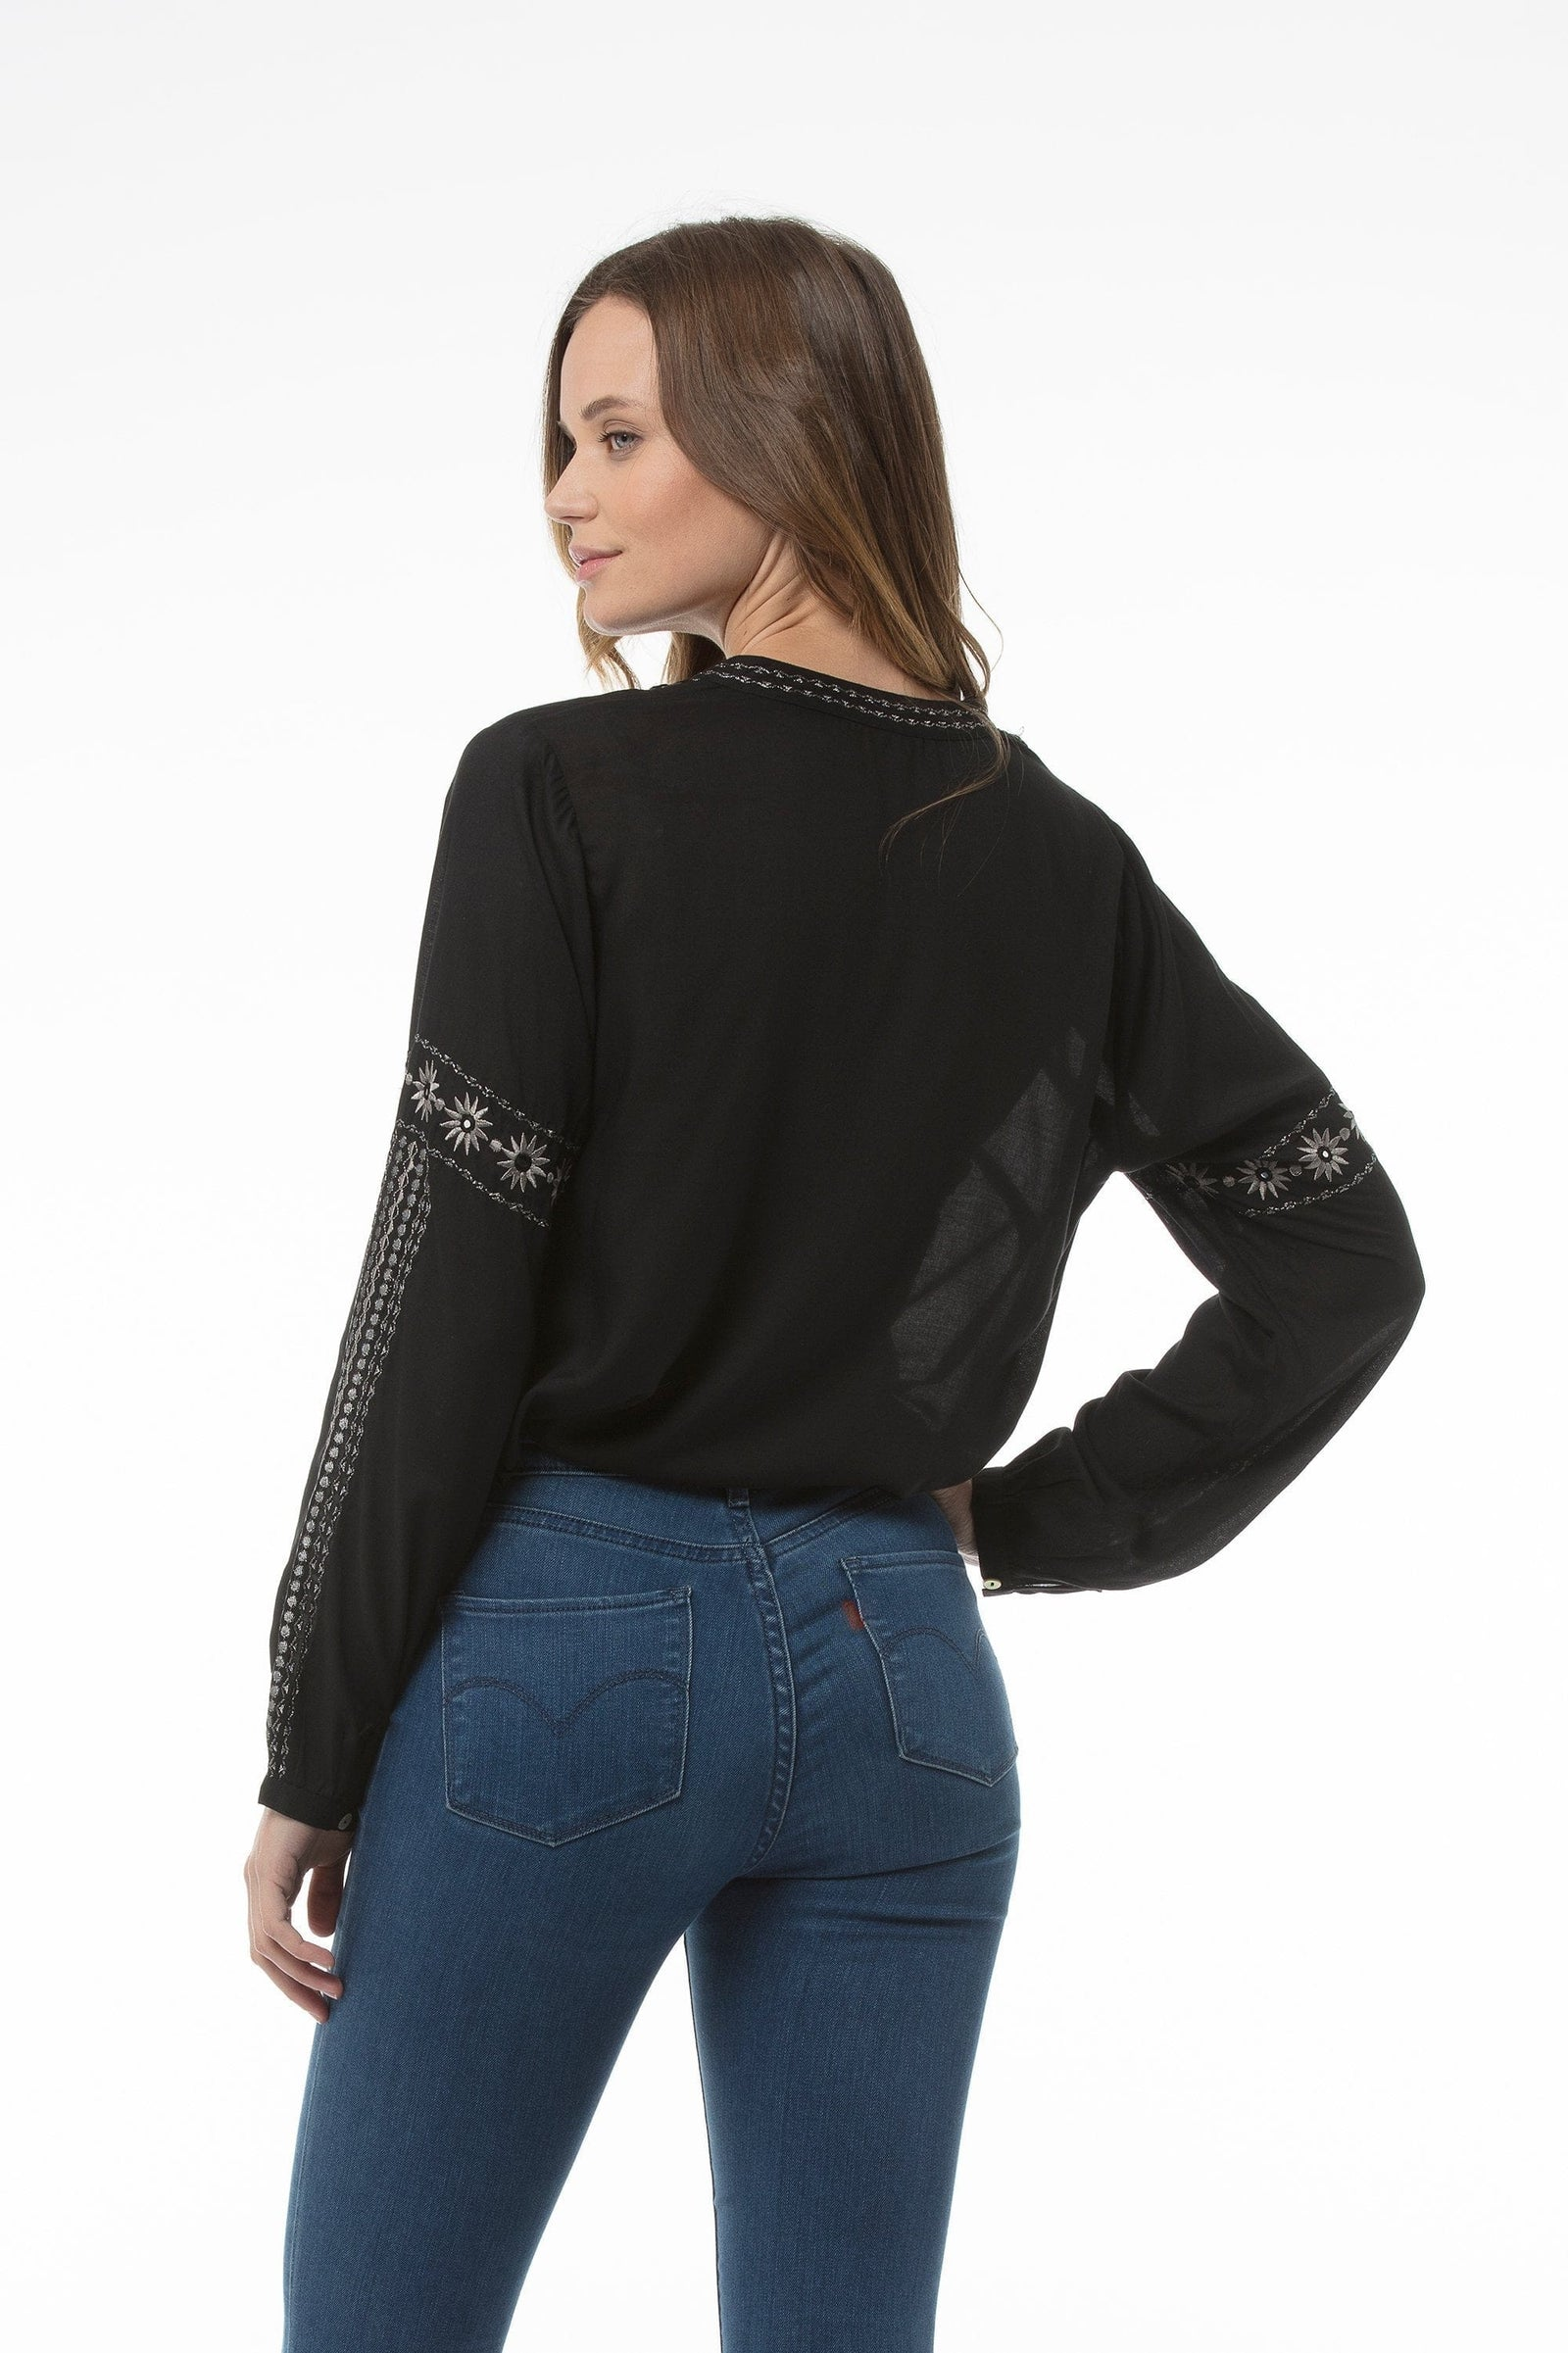 hilde-top-black